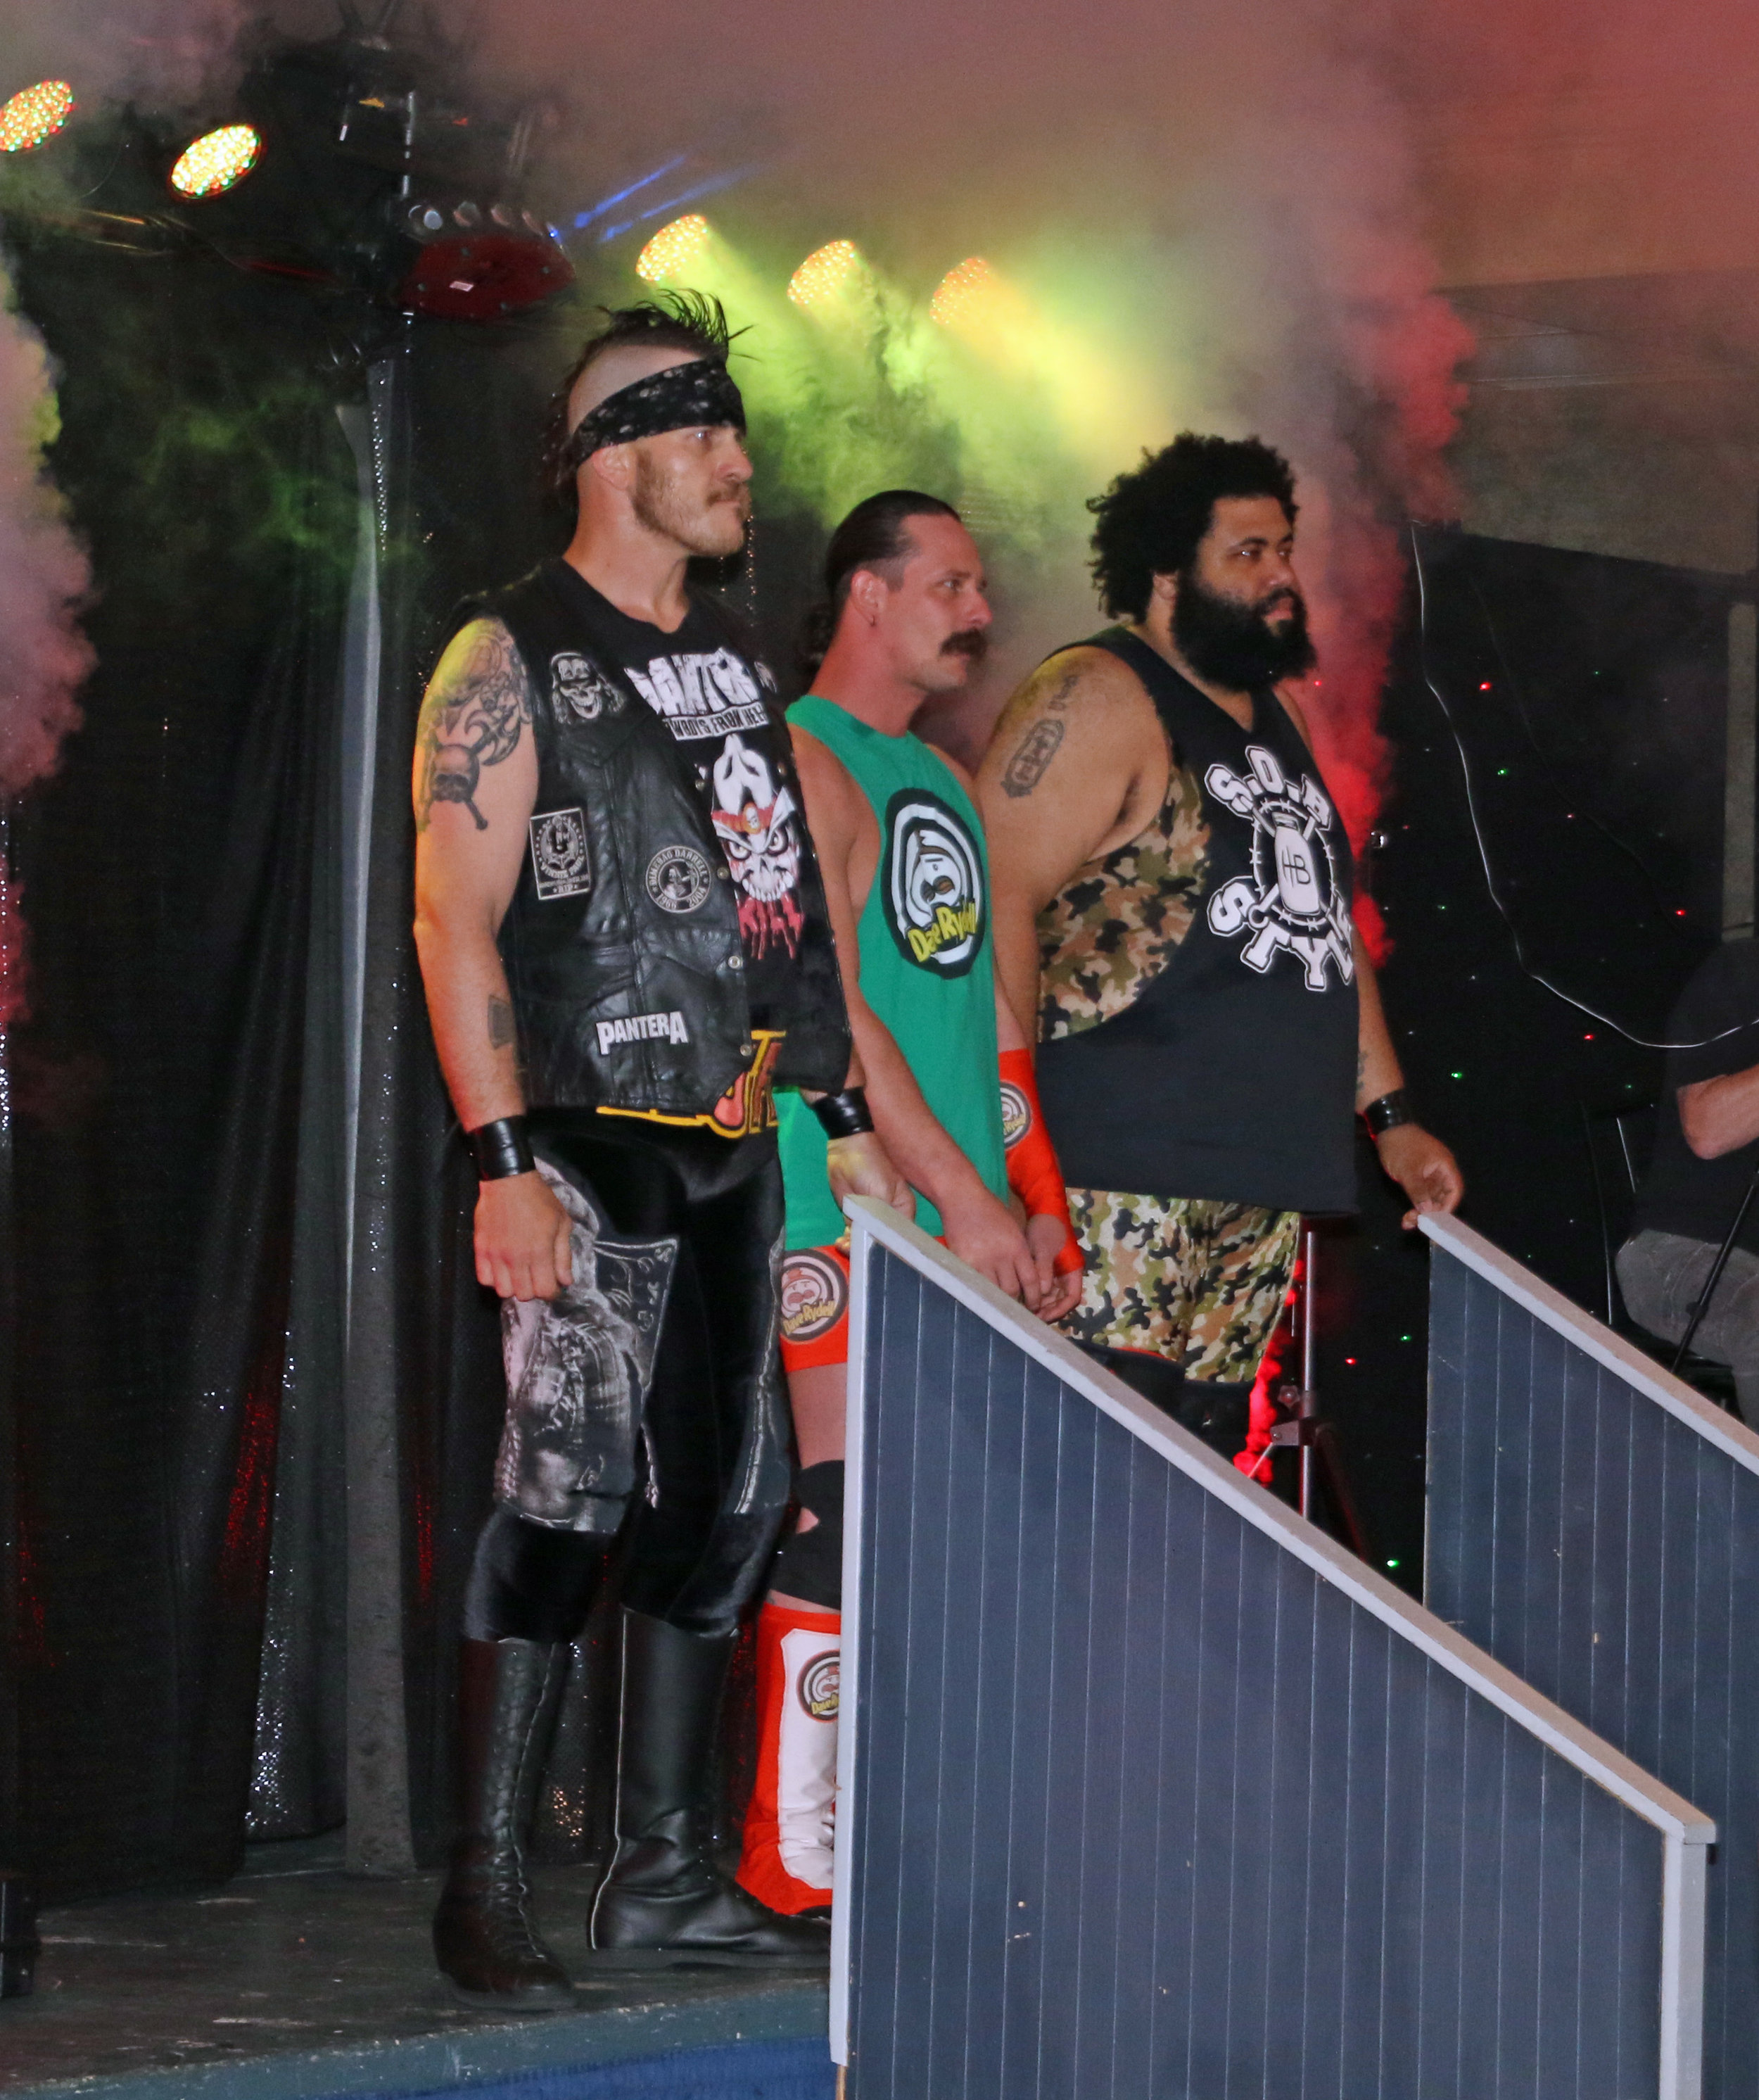 Ruff Crossing, from left, Dave Rydell and Backwoods Brown enter the arena to confront Sidney Bakabella and the Princes of the Universe.